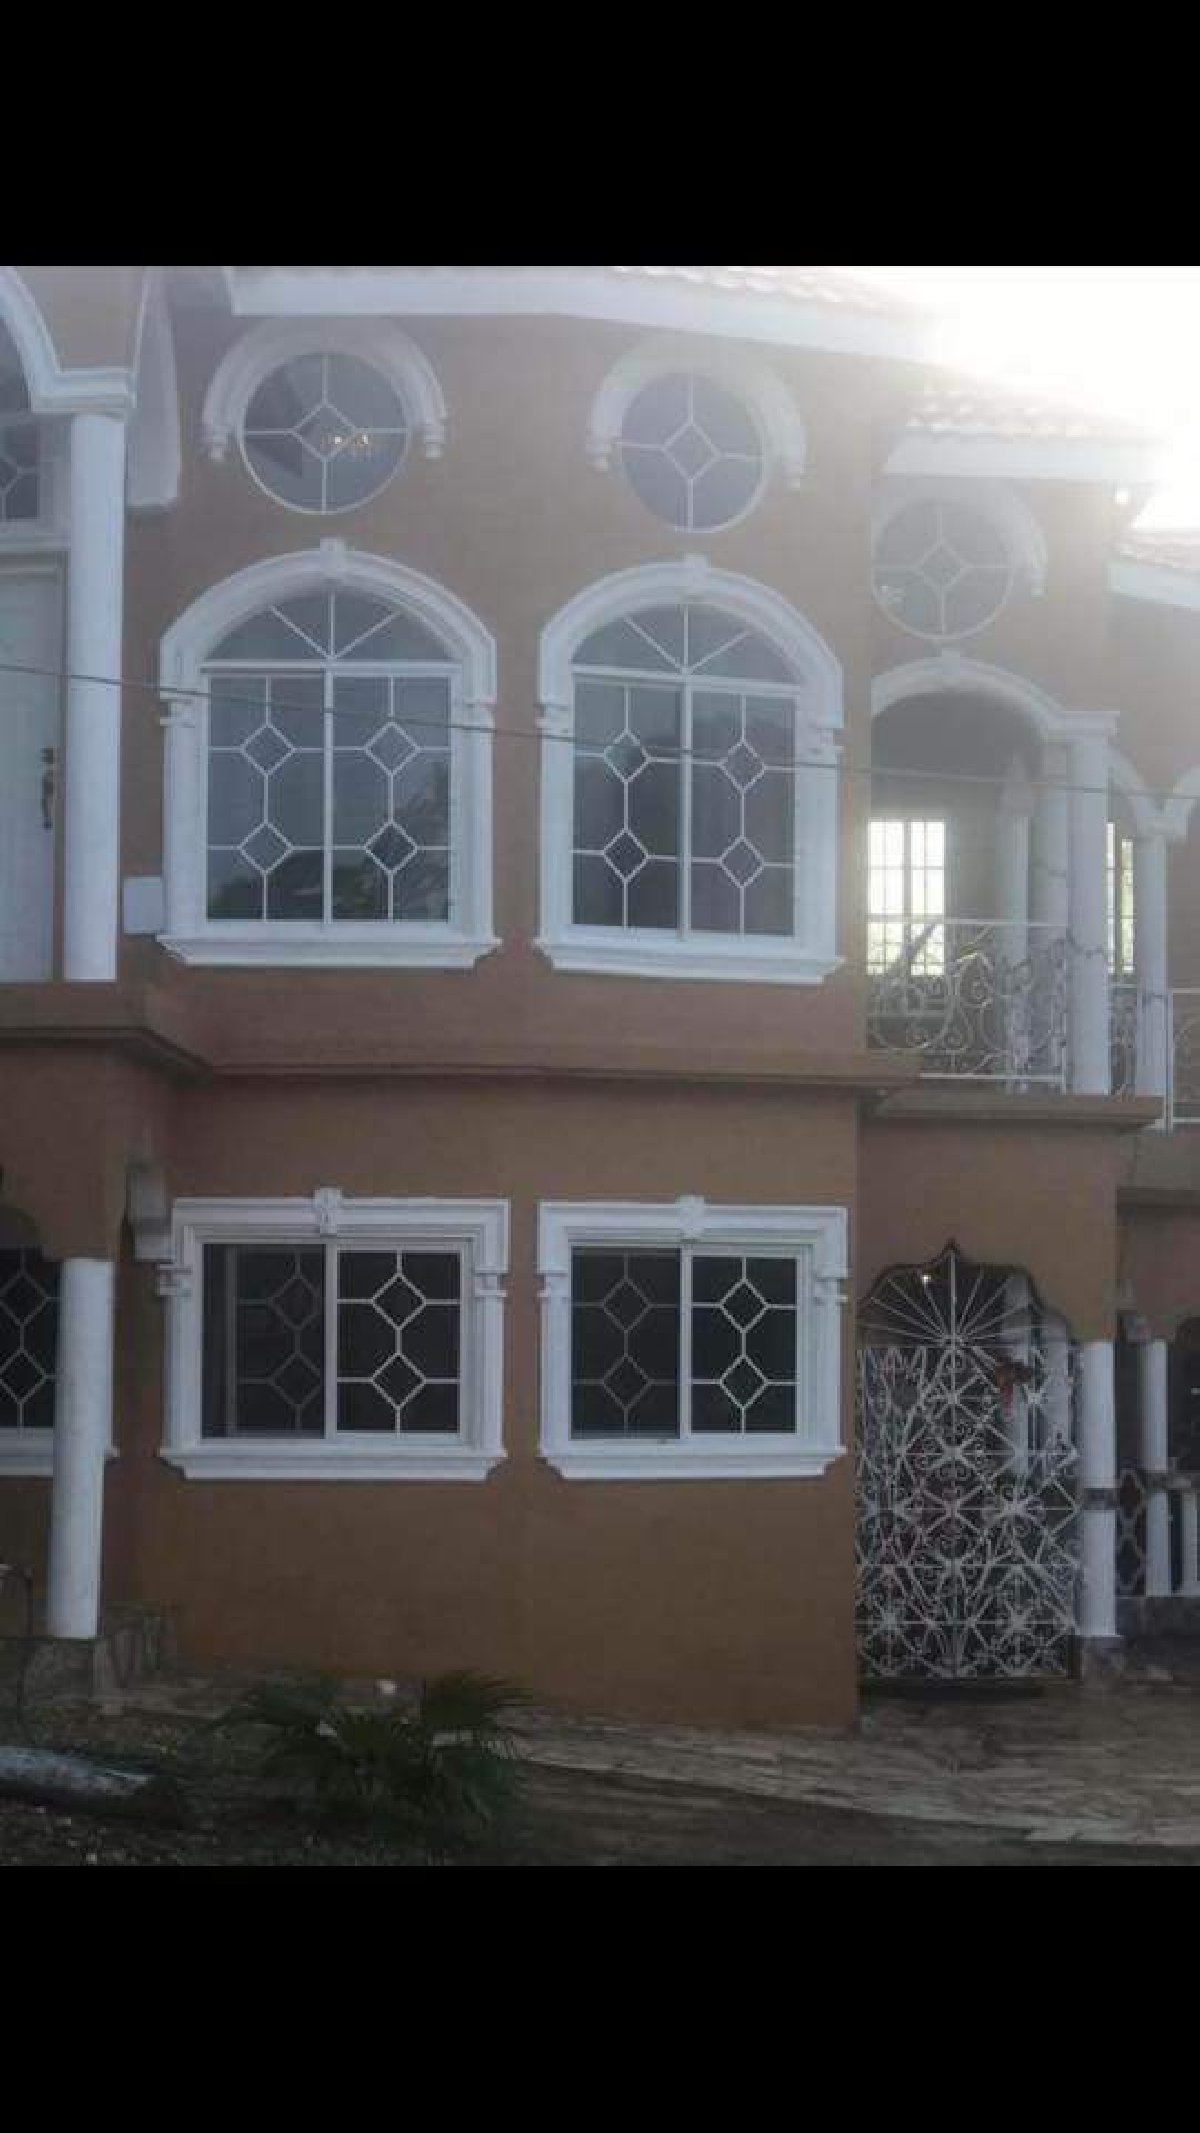 2 Bedroom 2 Bathroom Apartment For Rent in Siloah St ...